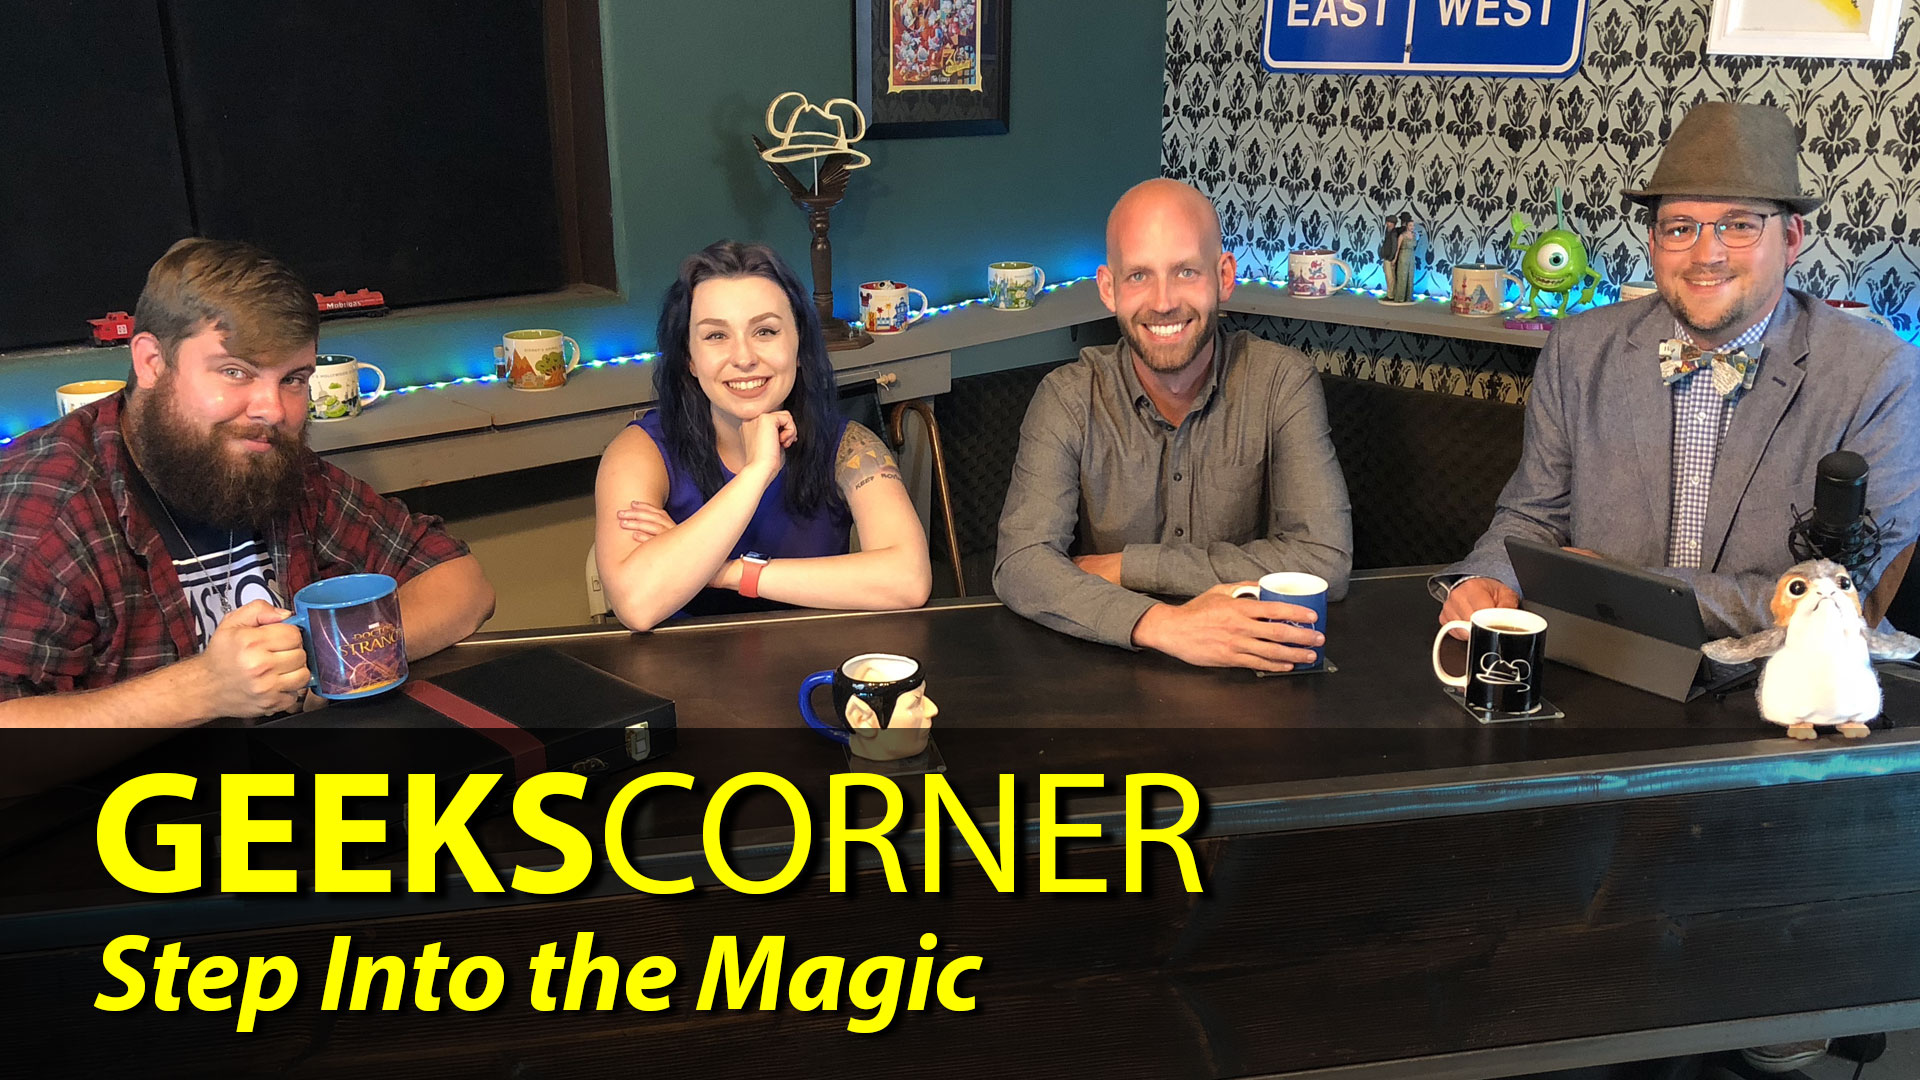 Step Into the Magic – GEEKS CORNER (With Special Guest Bret Iwan) – Episode 830